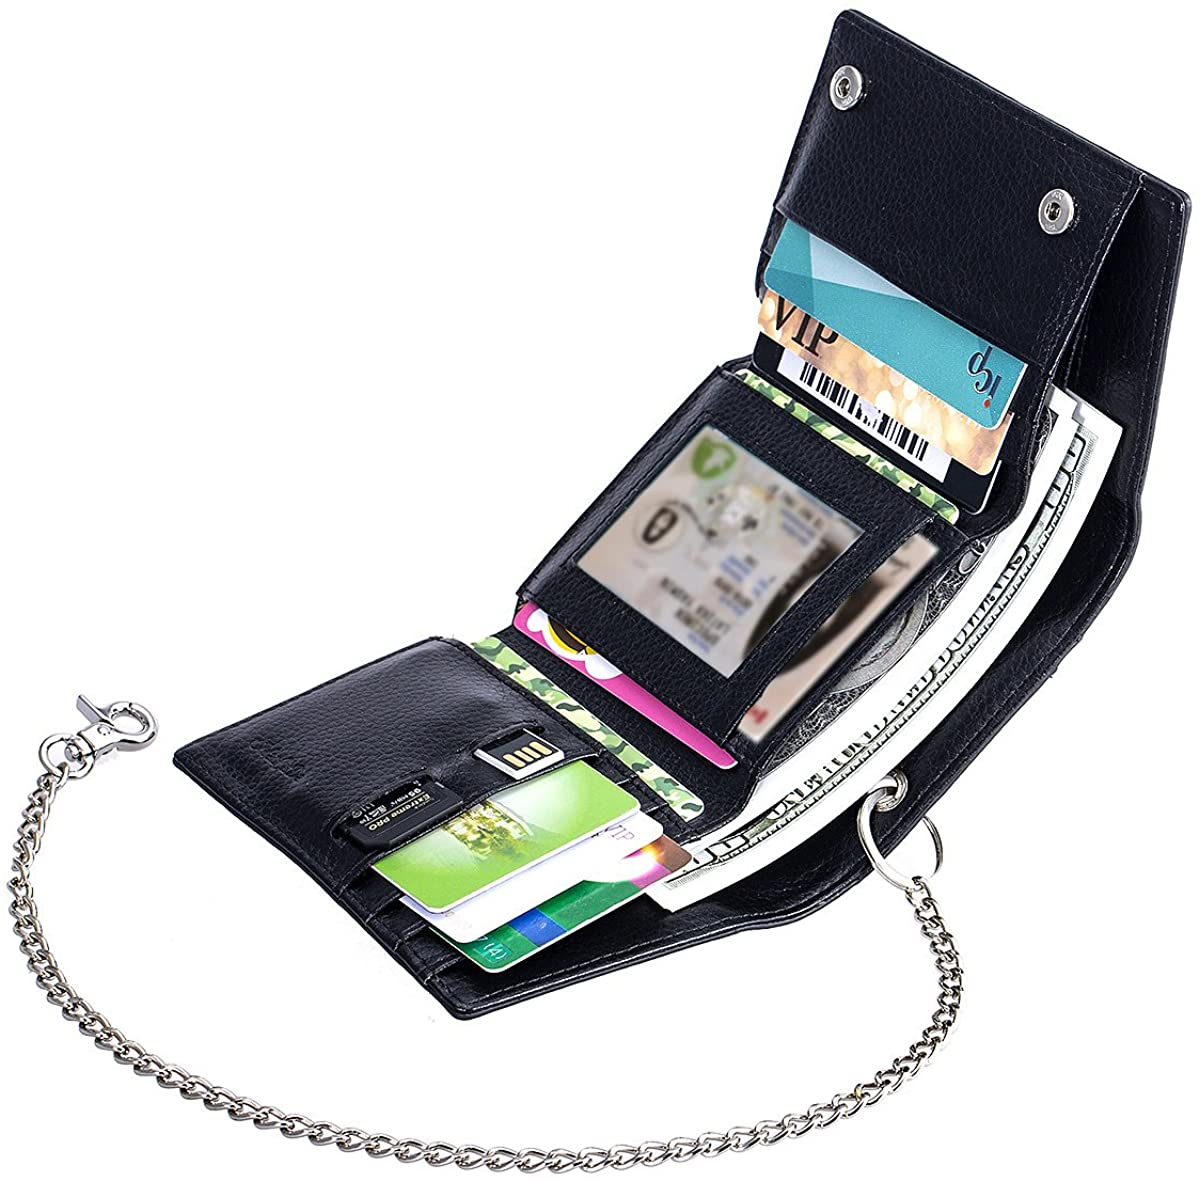 ManChDa Multiple Trifold Wallet -Slits Black Small Size Leather RFID Blocking with one Removable Chain